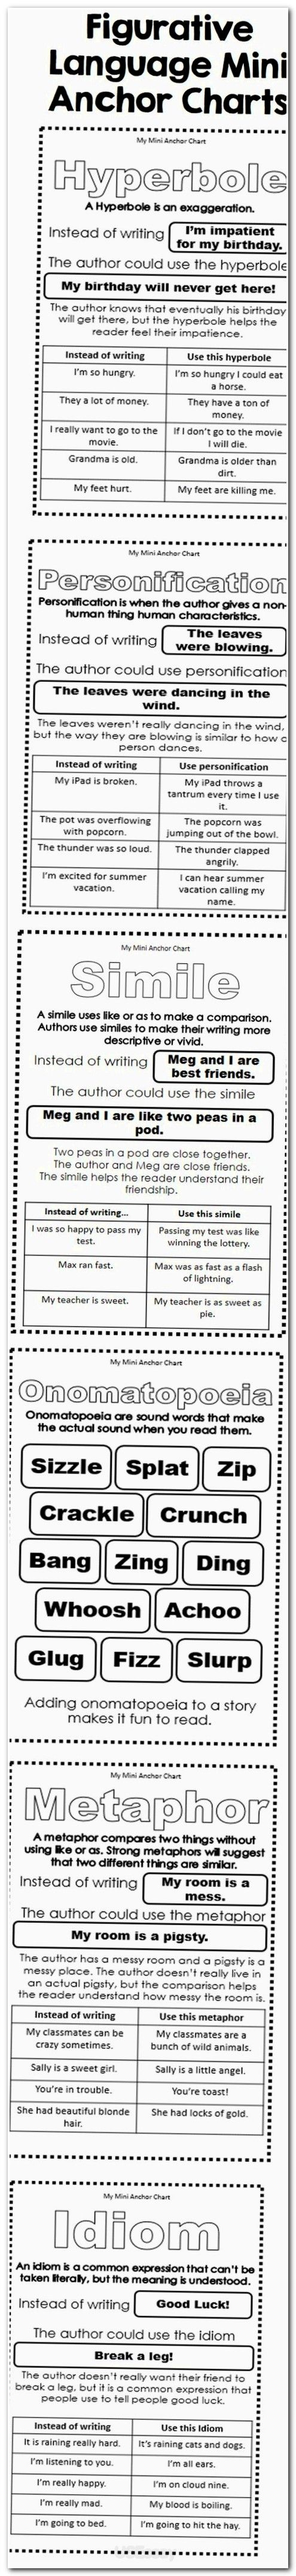 cause and effect words examples